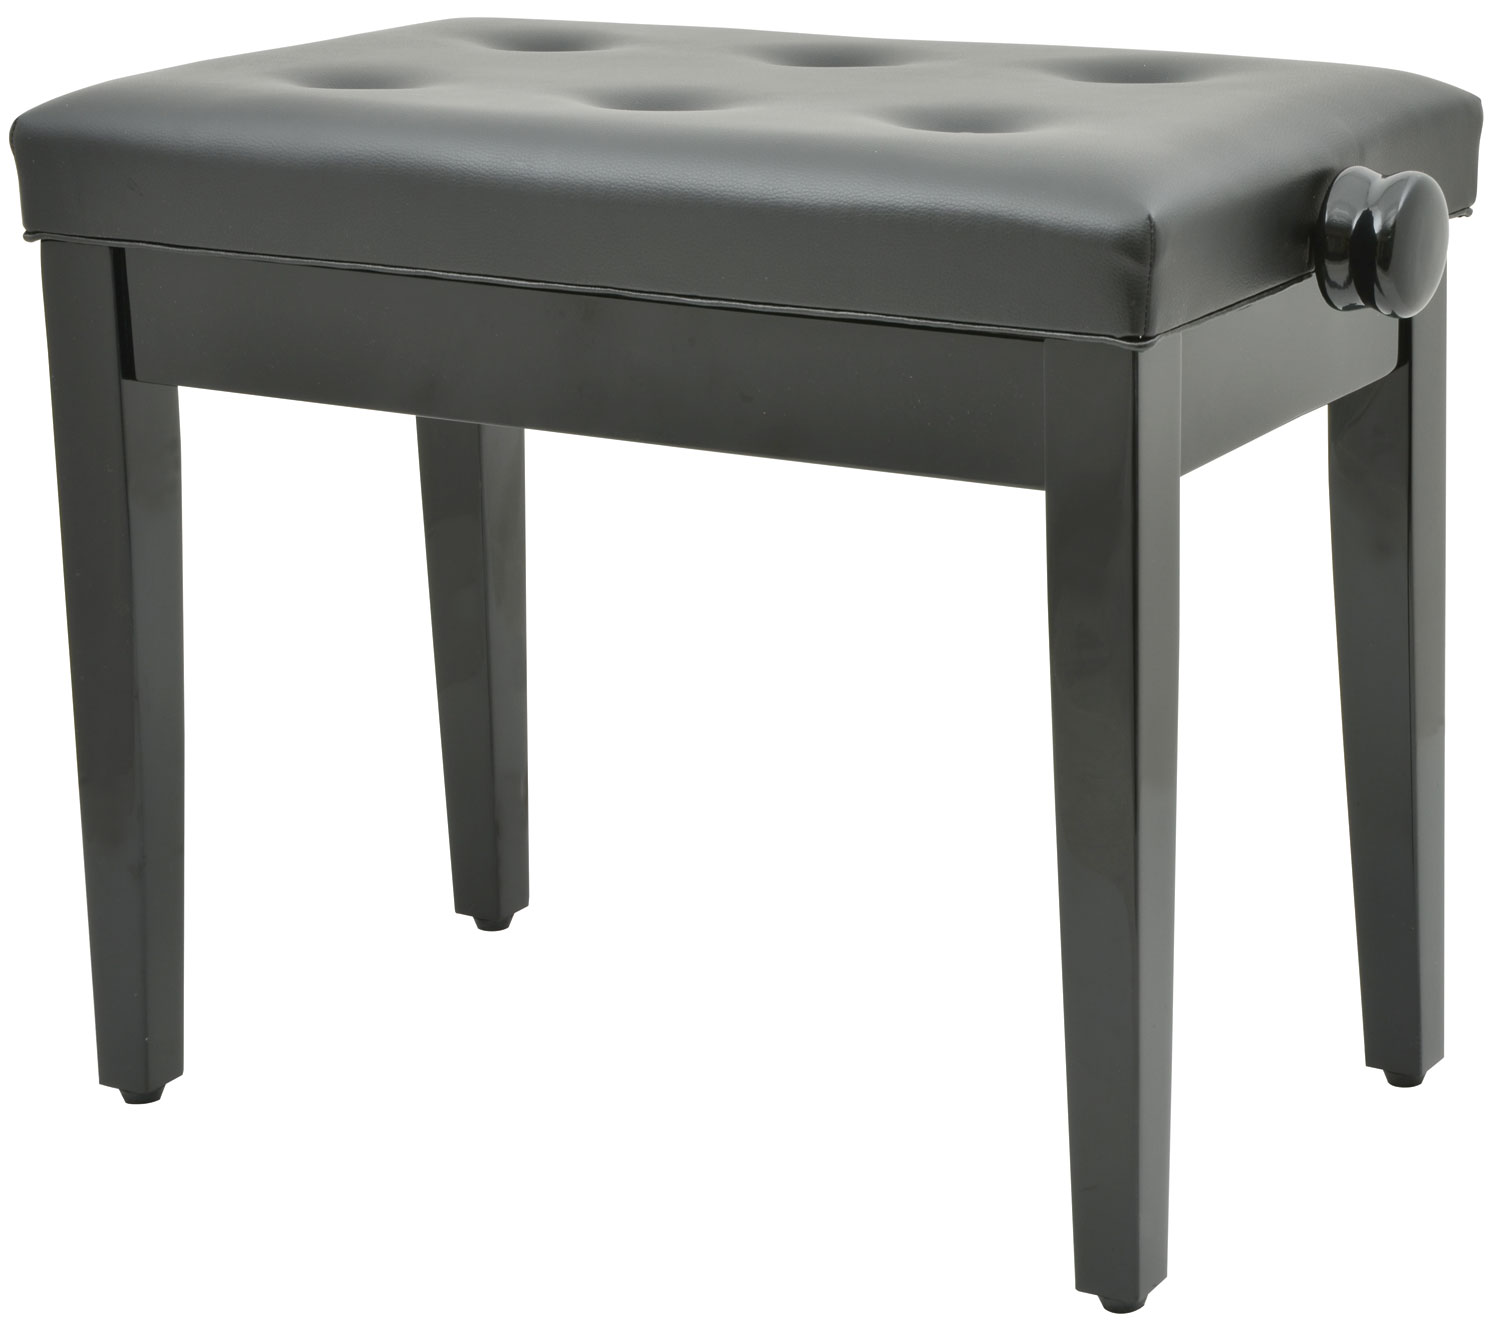 Chord Piano bench - black